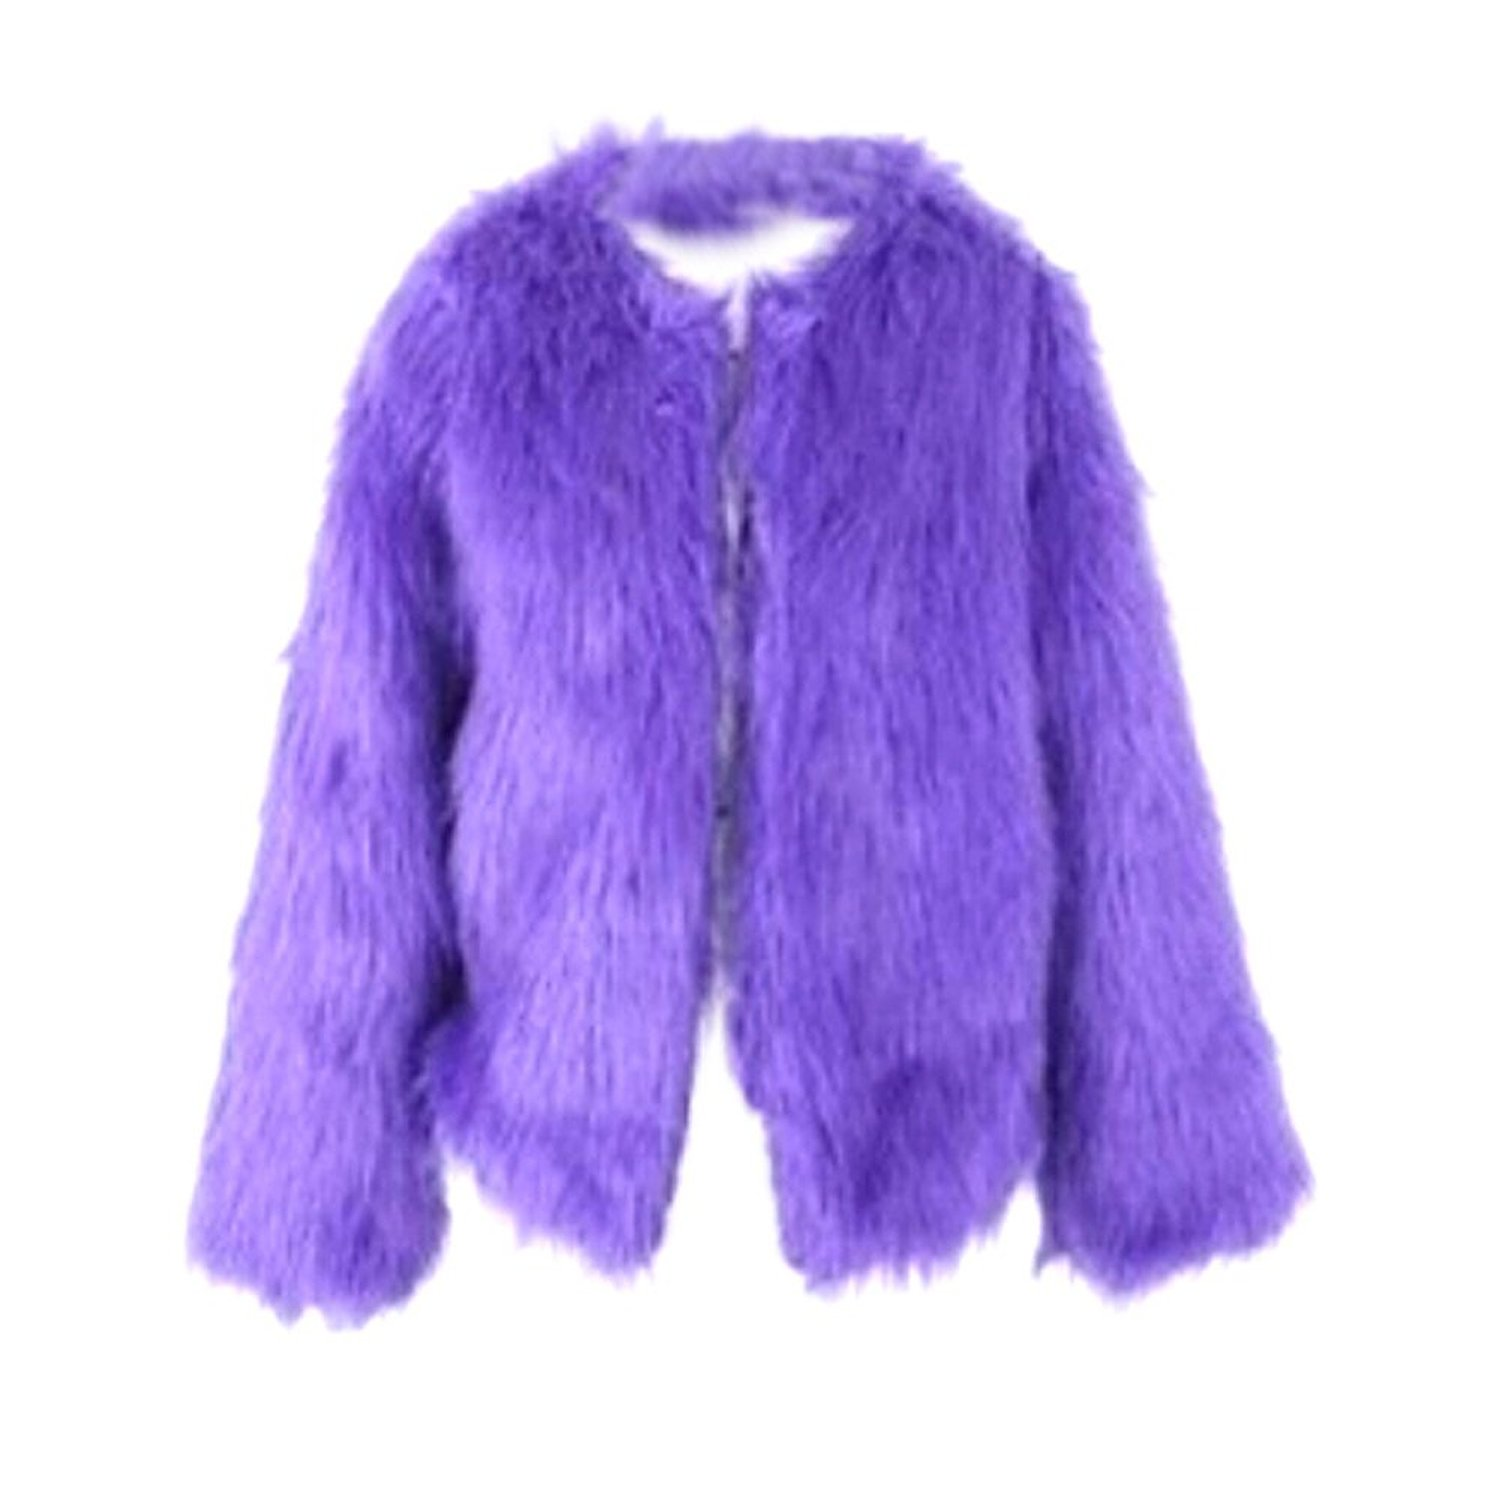 Etosell Chic Lady Faux Fur Coat Long Hair Jacket Winter Outerwear Overcoat at Amazon Women's Clothing store: